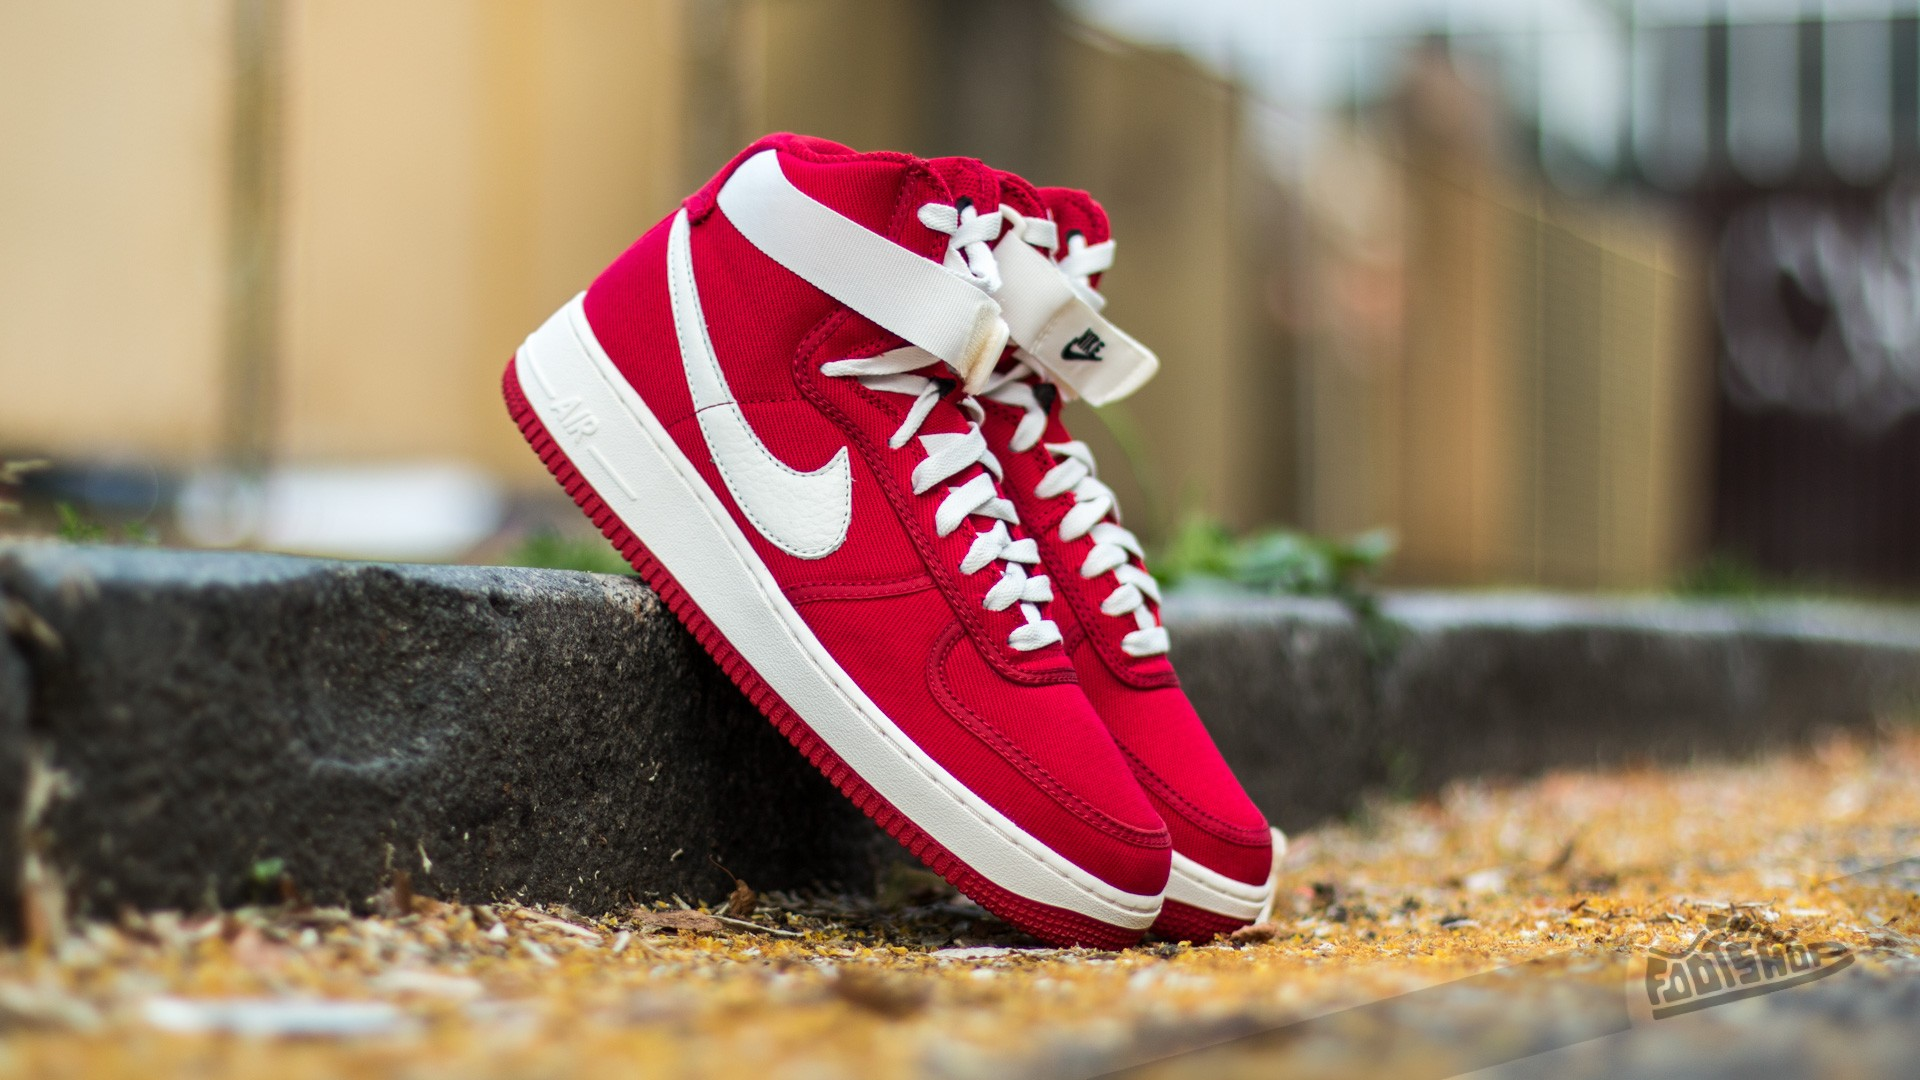 reputable site 973dc 91280 Nike Air Force 1 High Retro Gym Red/ Sail-Black | Footshop